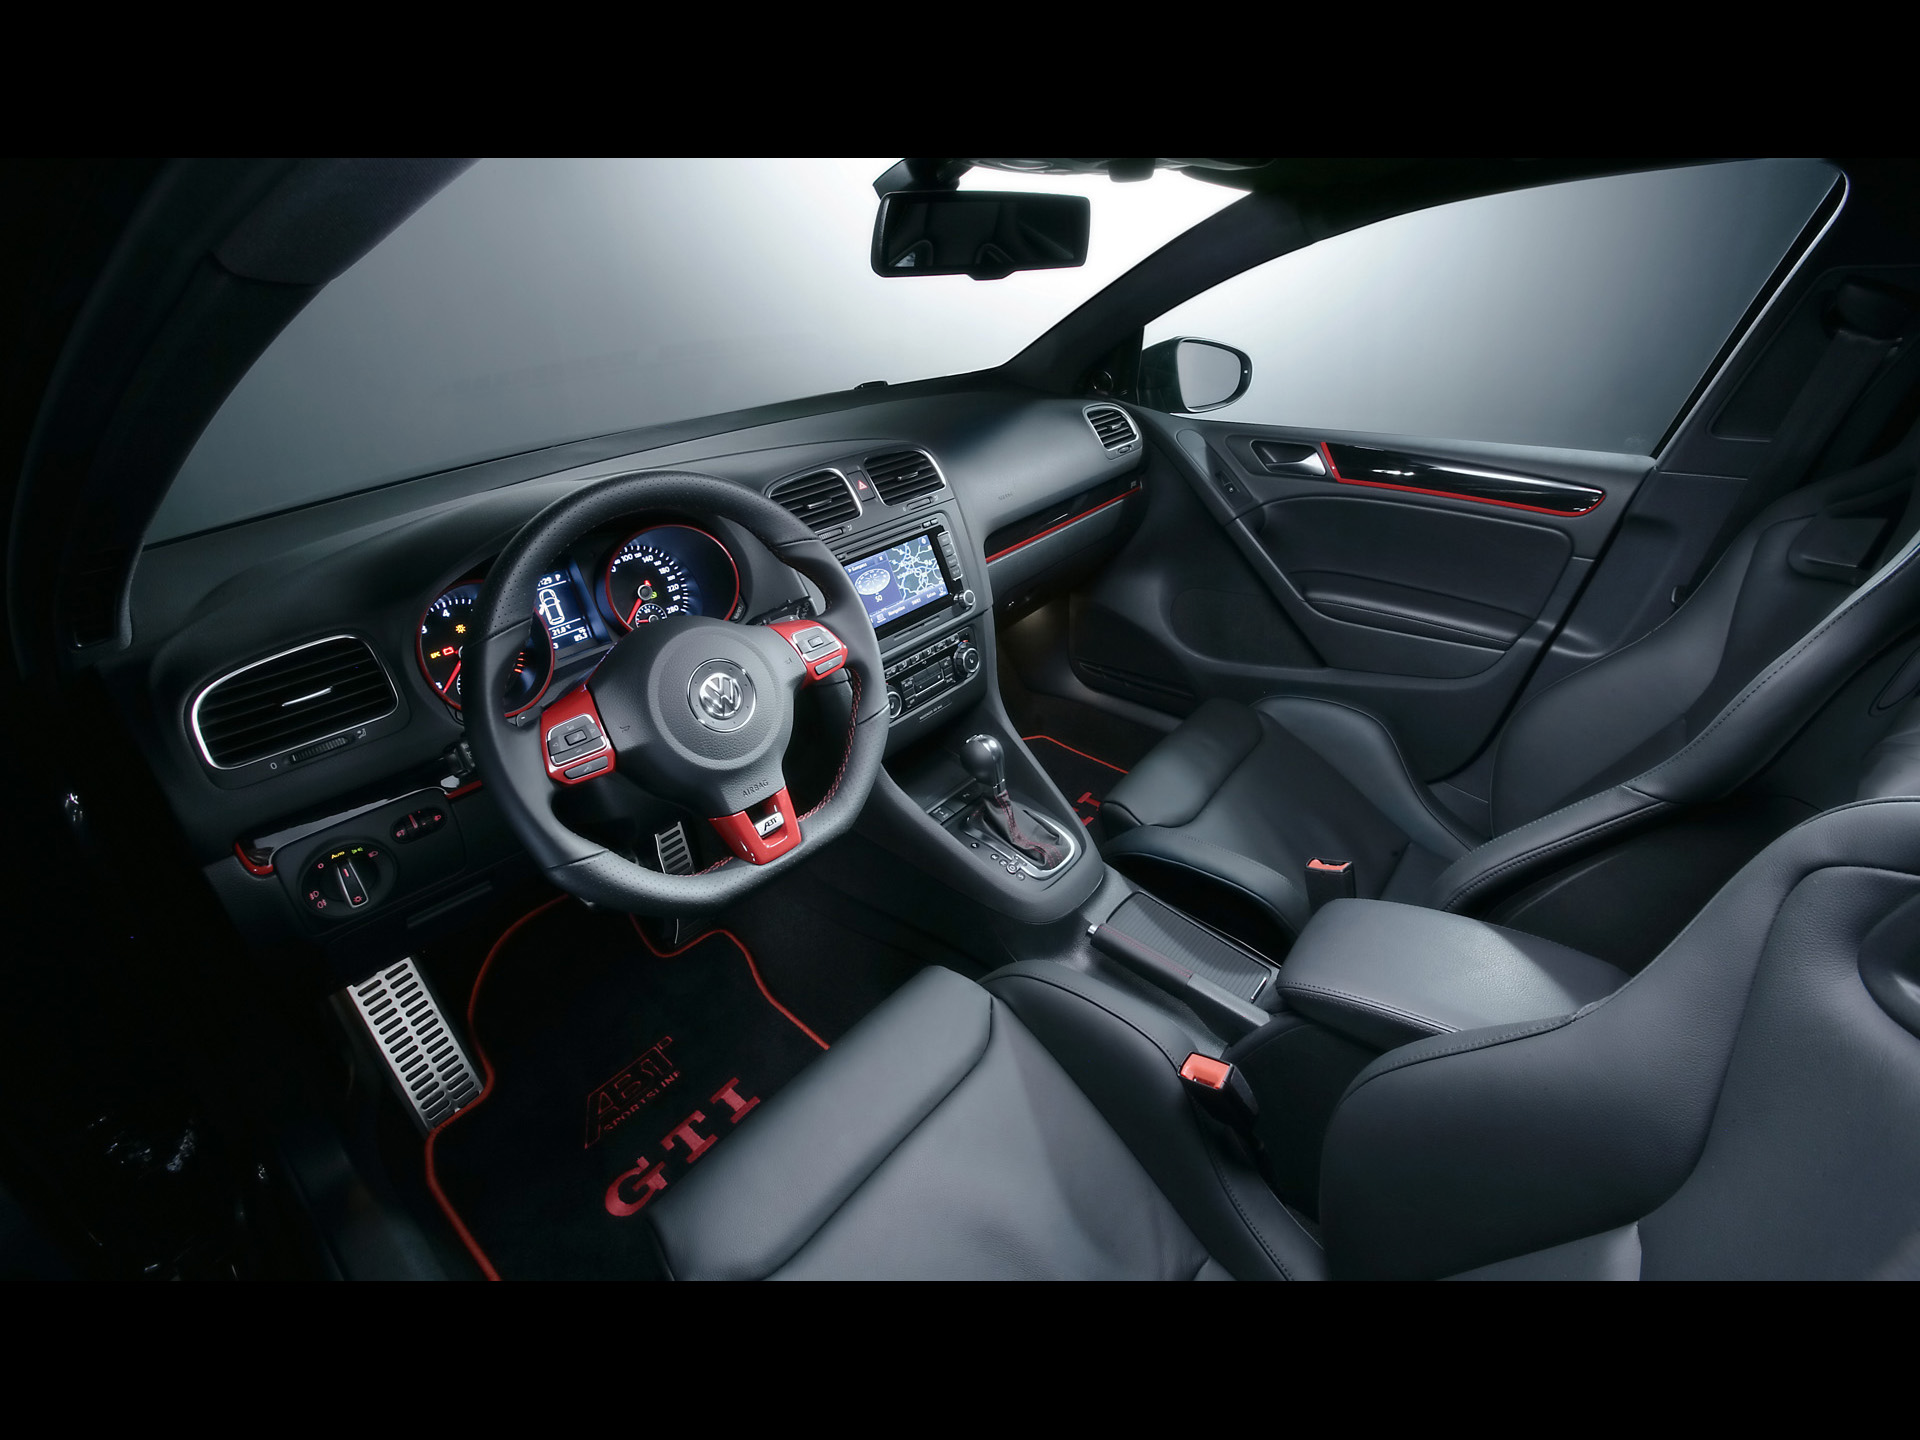 VW GTI ABT Interior Wallpapers VW GTI ABT Interior Stock Photos - Abt ipad